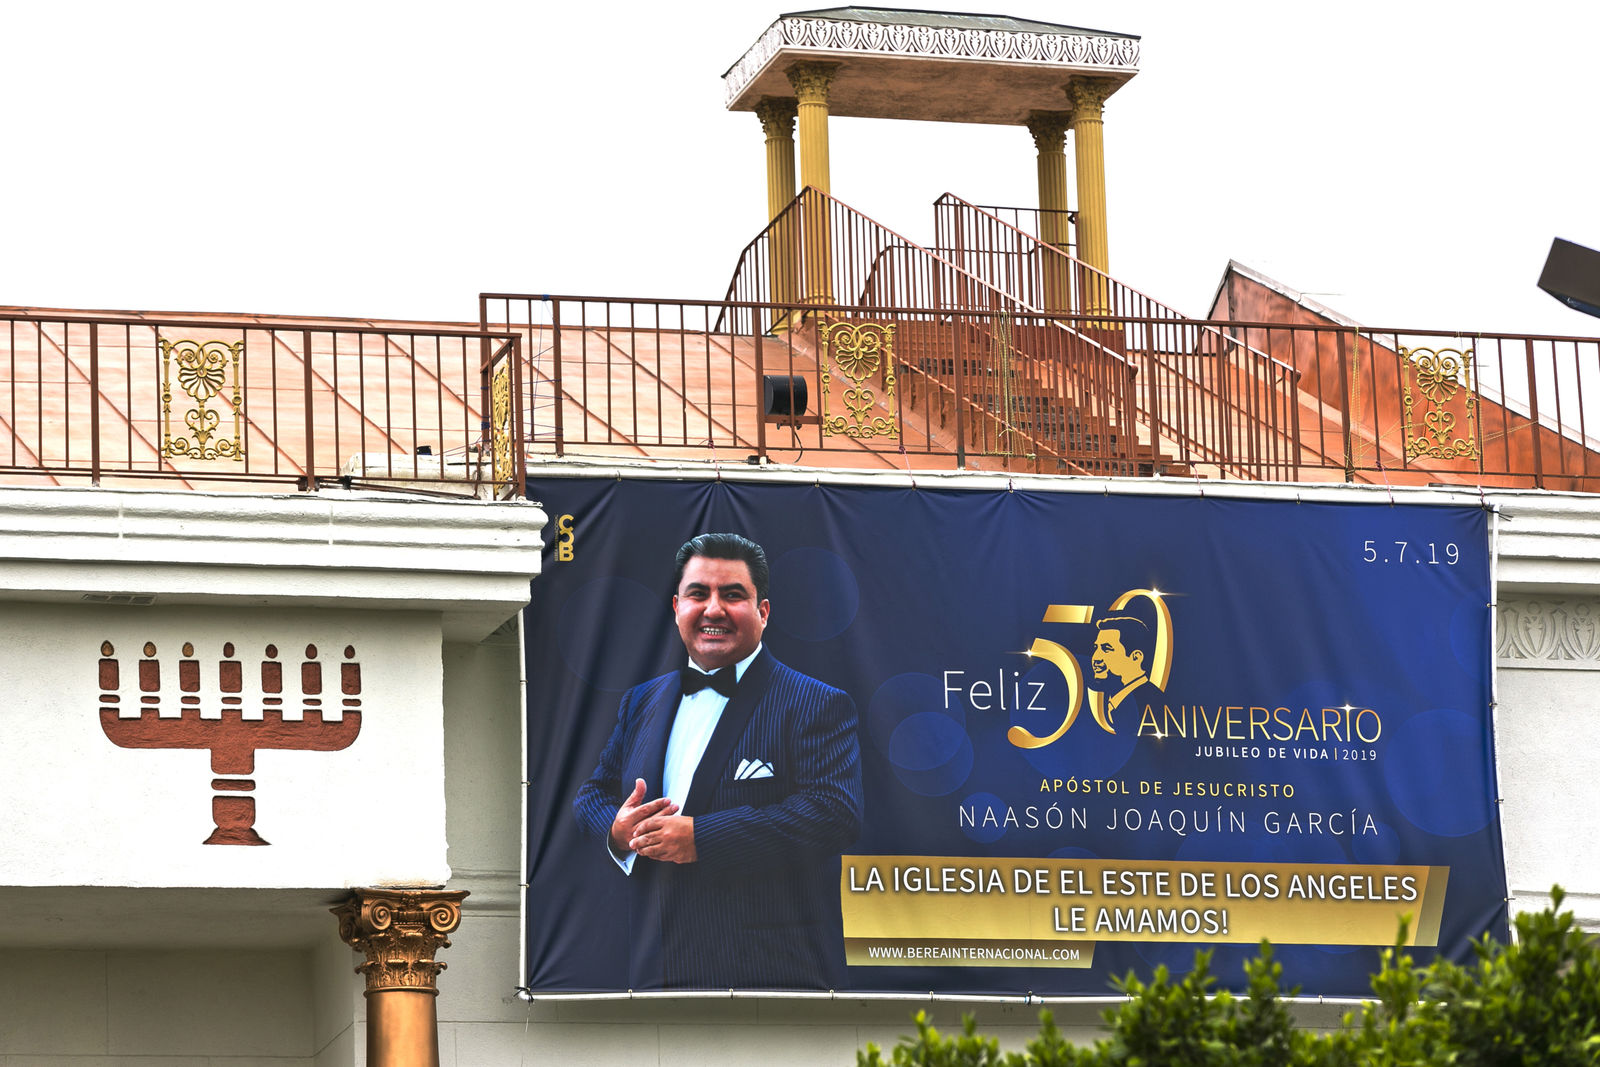 Mexico-based megachurch La Luz del Mundo, leader and self-proclaimed apostle Naasón Joaquín García's 50 birthday celebration portrait, is displayed on the side of the East Los Angeles temple on Friday, June 7, 2019. (AP Photo/Damian Dovarganes)